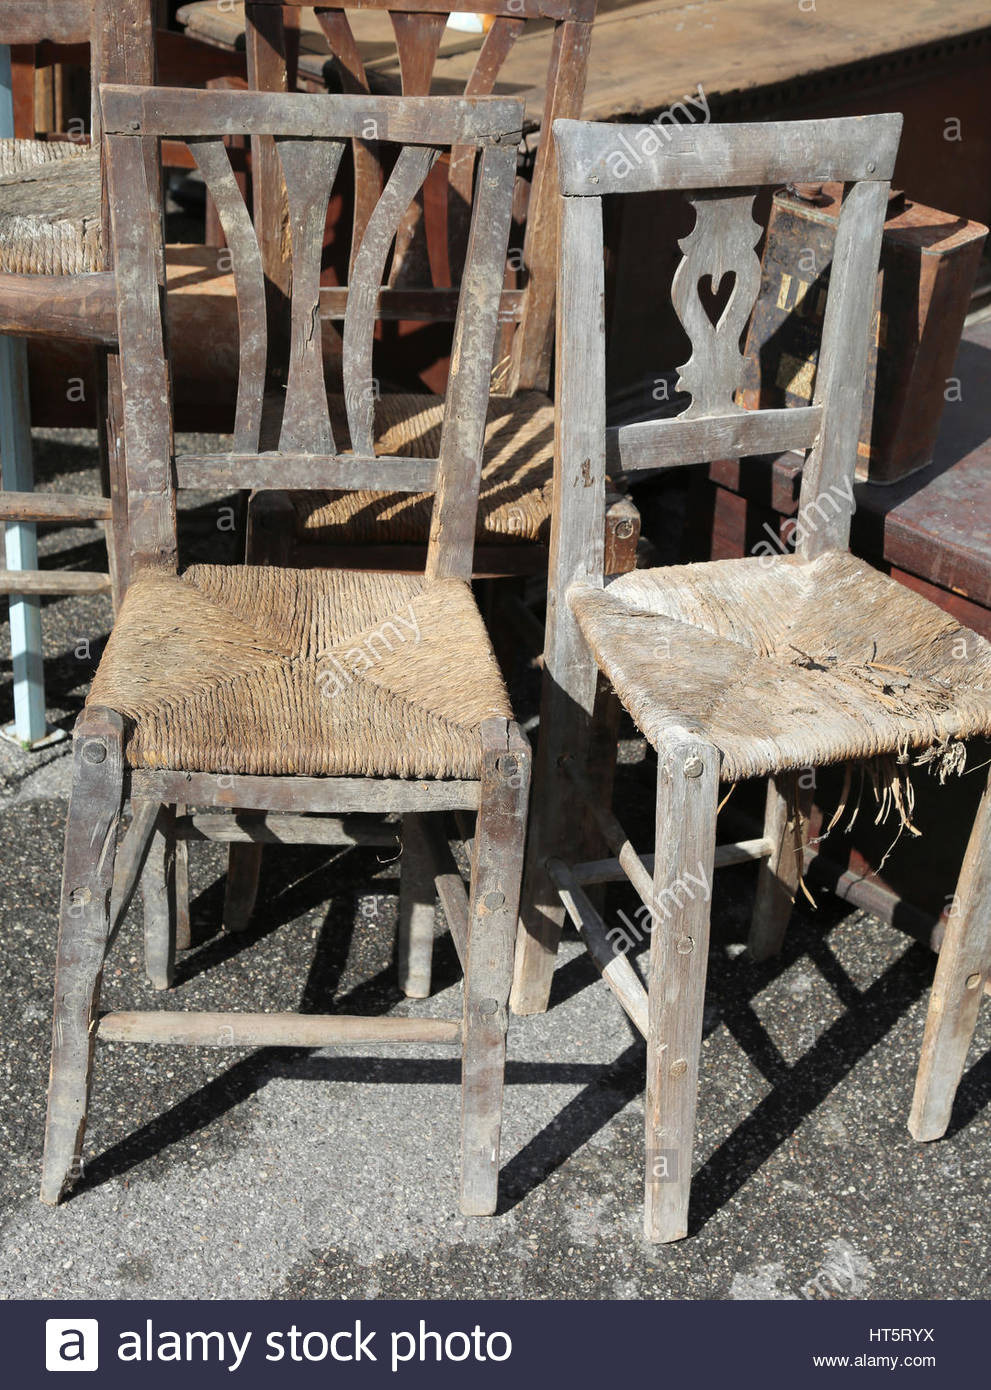 old wicker chairs for sale in the outdoor antiques market HT5RYX